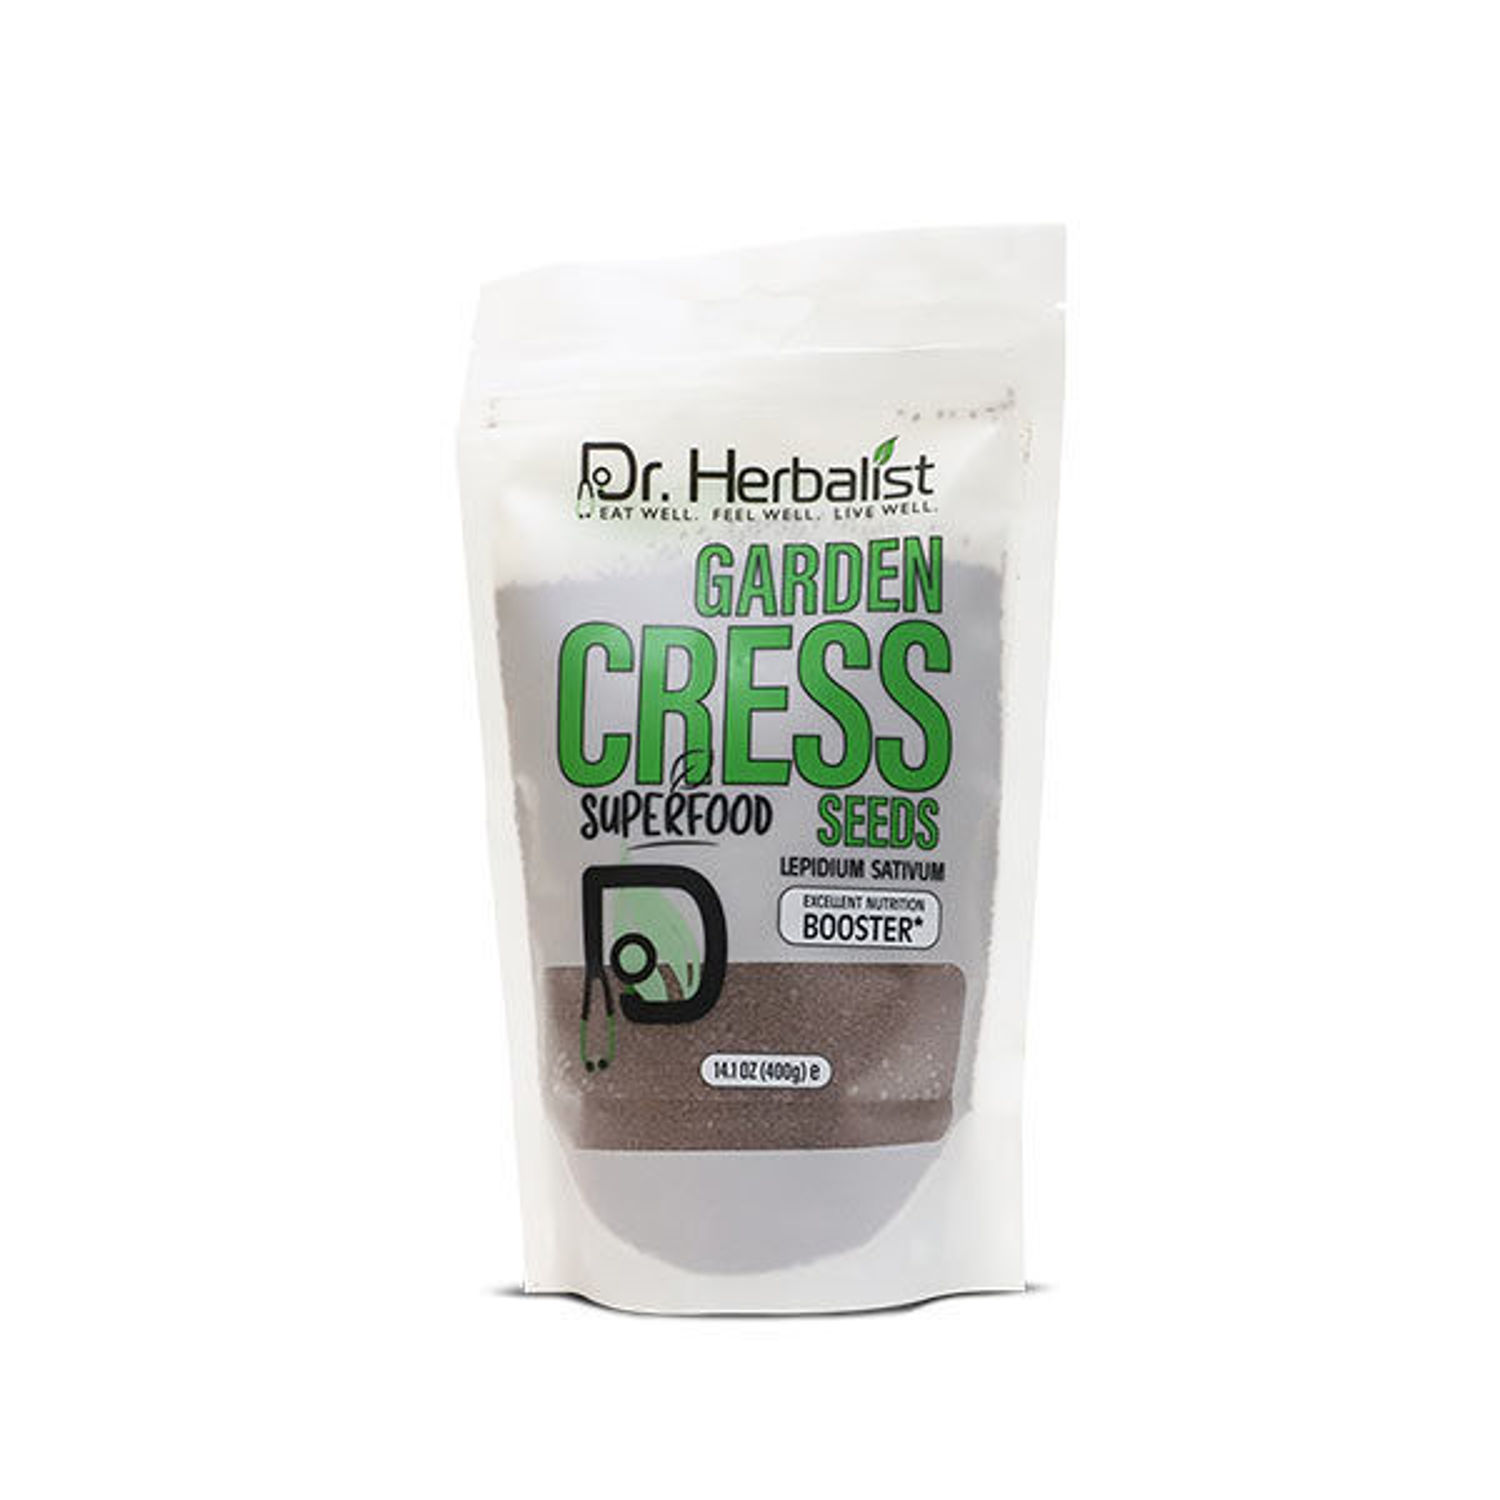 Dr Herbalist Superfood Cress Seeds